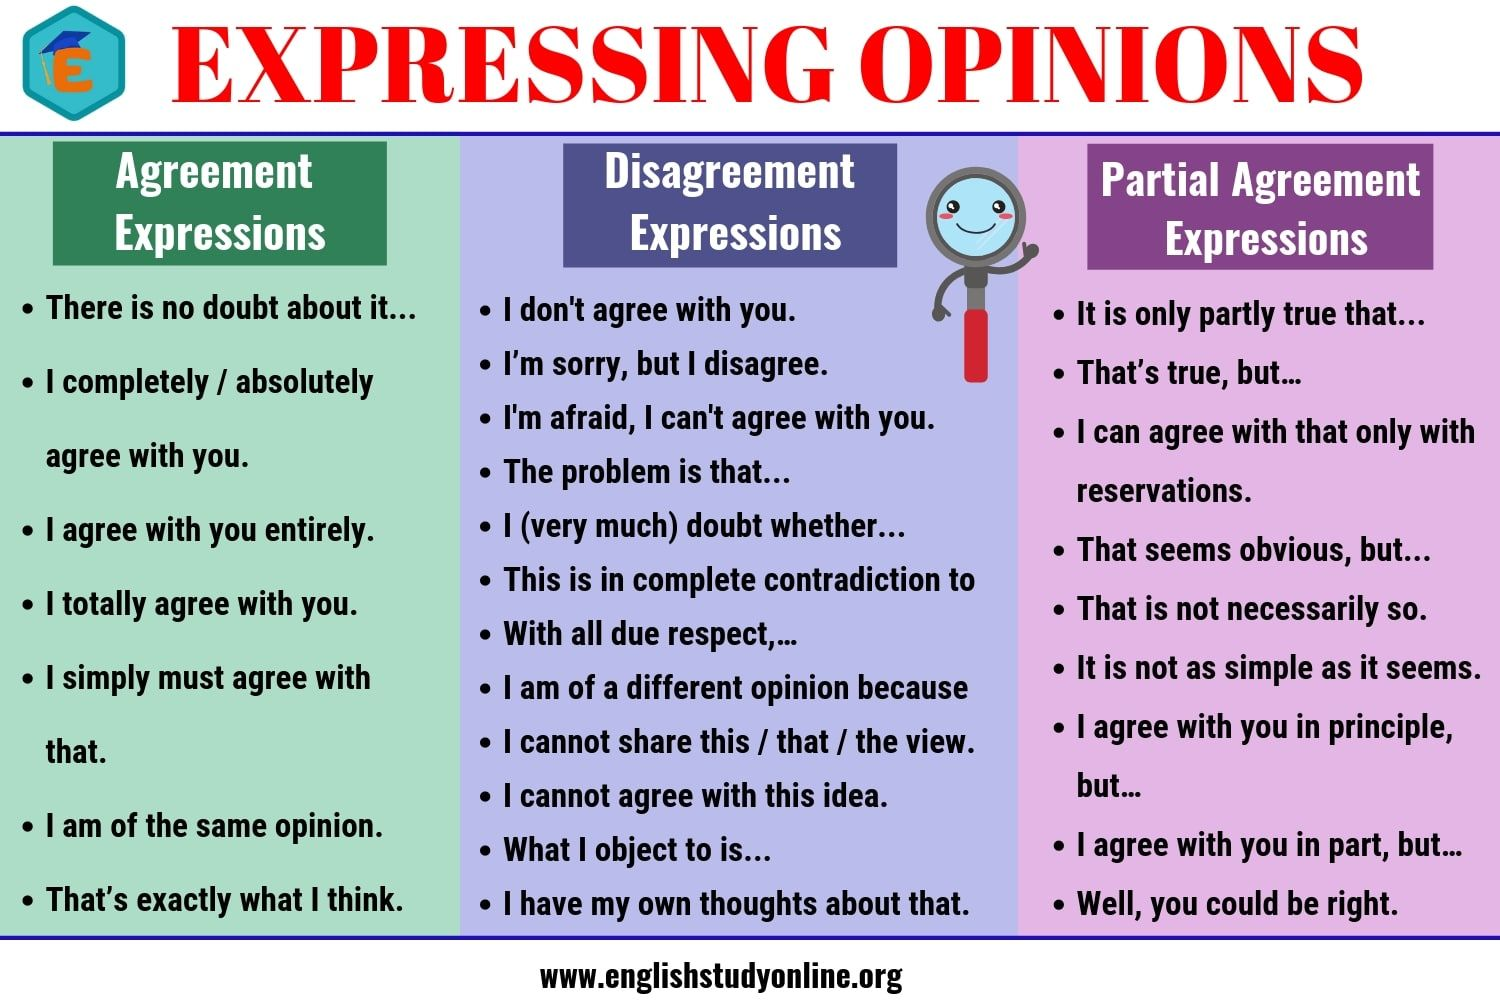 Expressing Opinions Agreement Partial And Disagreement